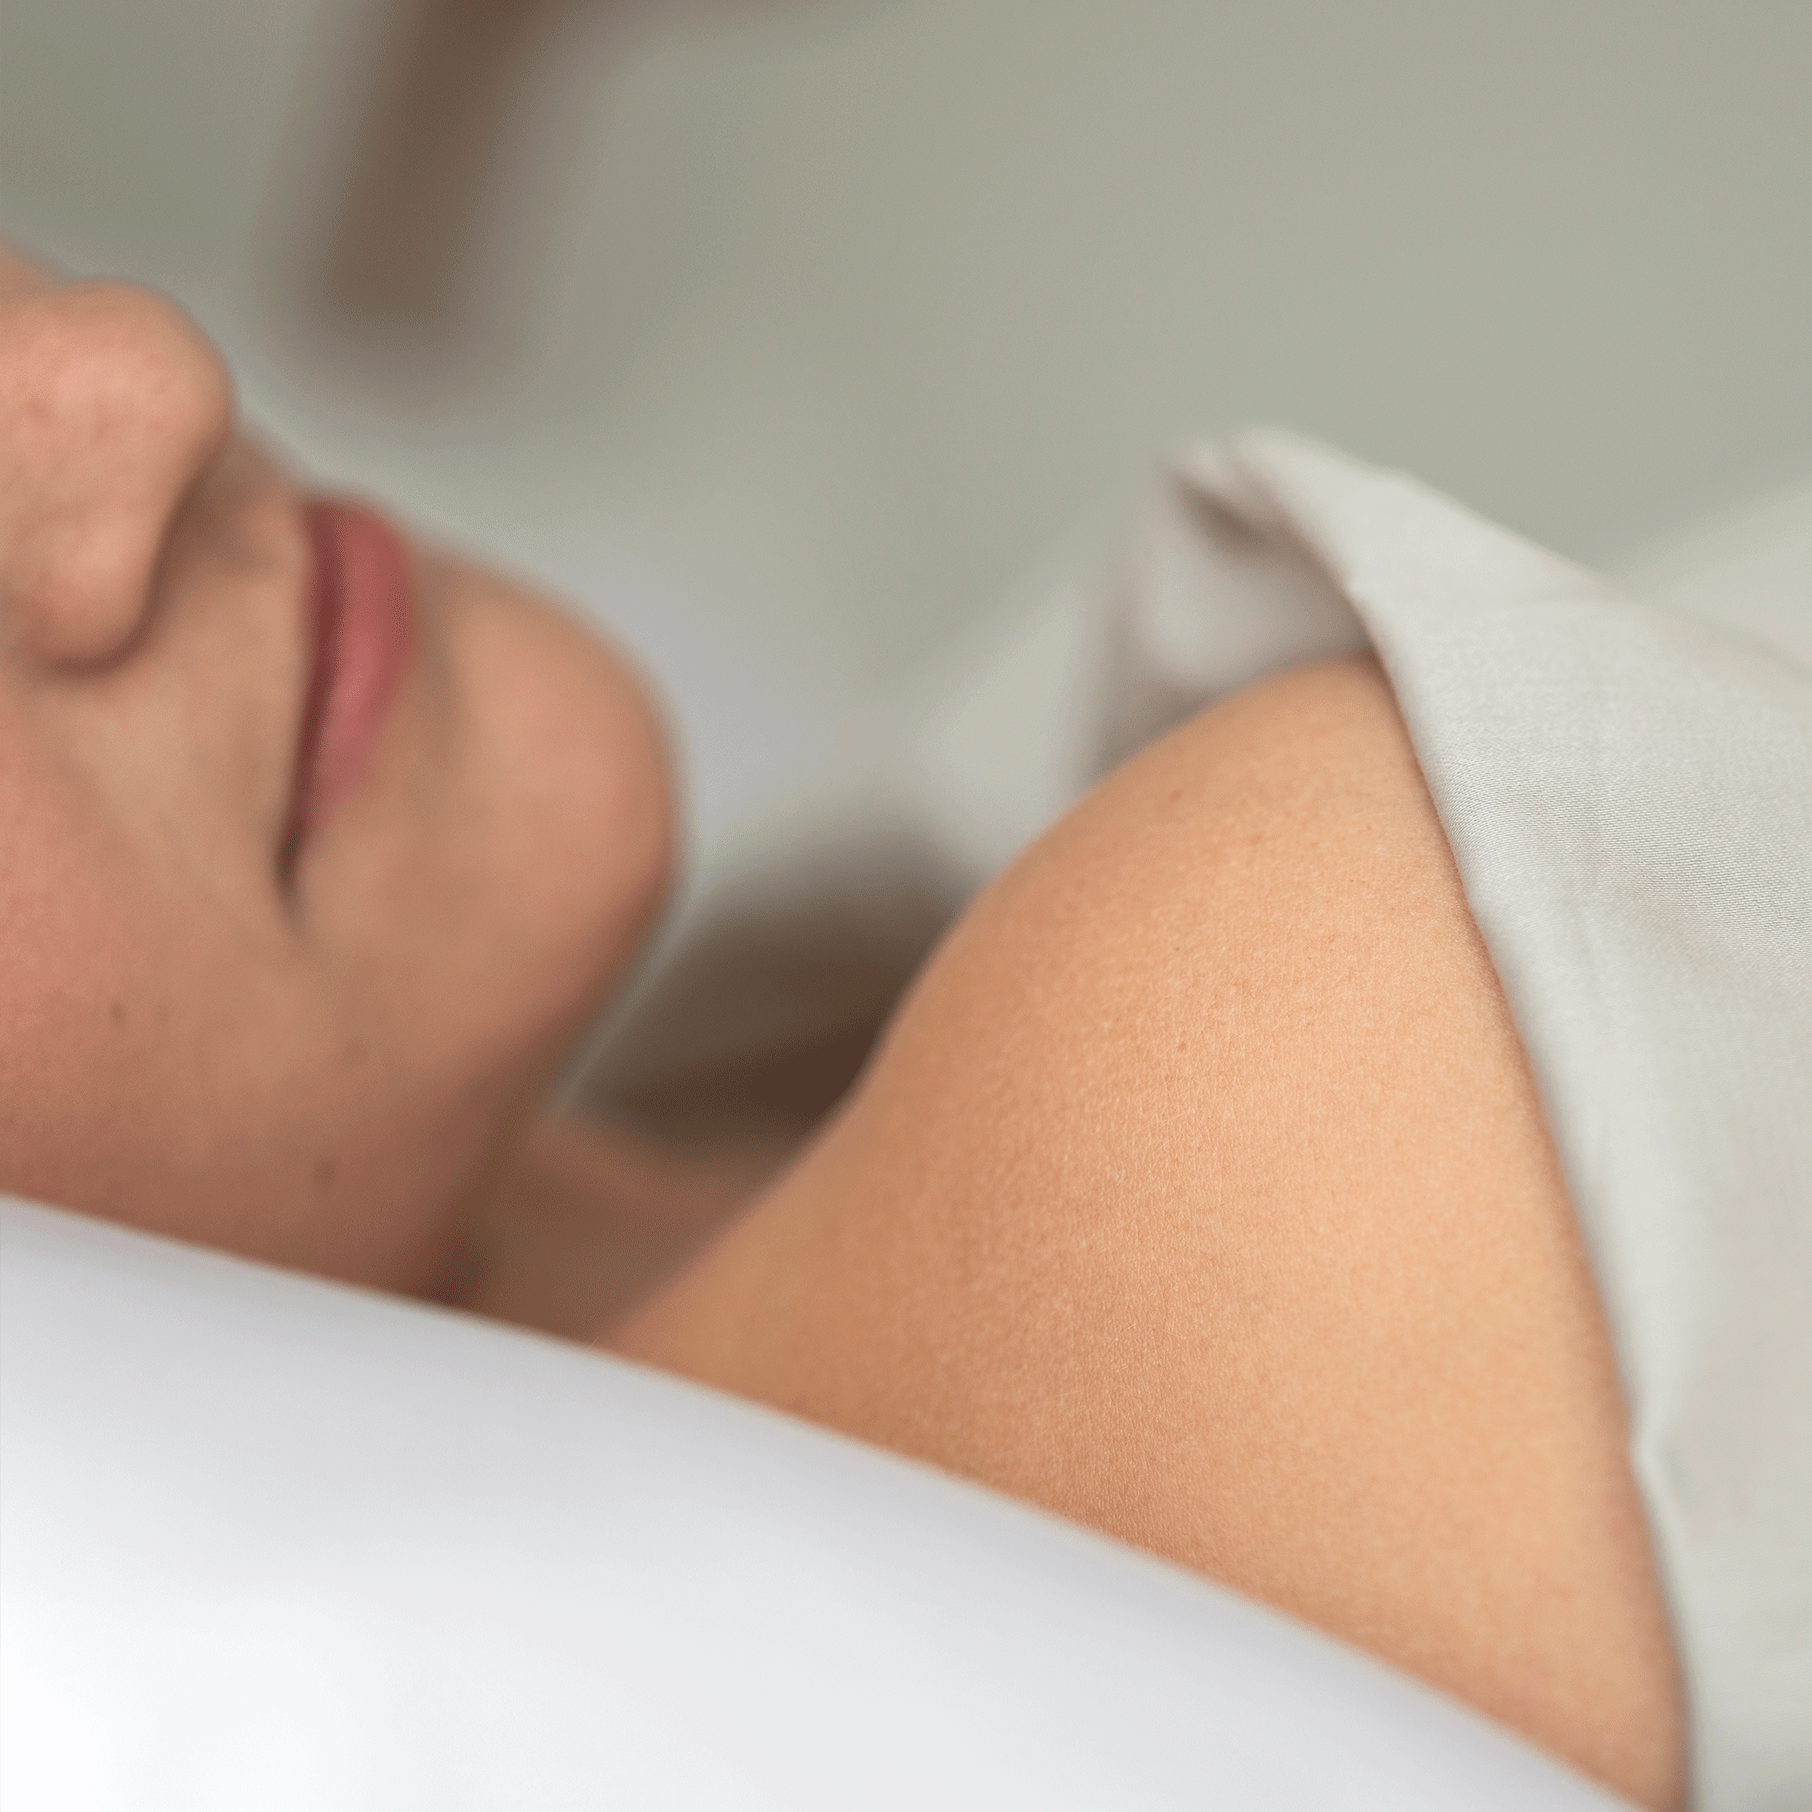 Woman's shoulder in touch with performance bed sheets